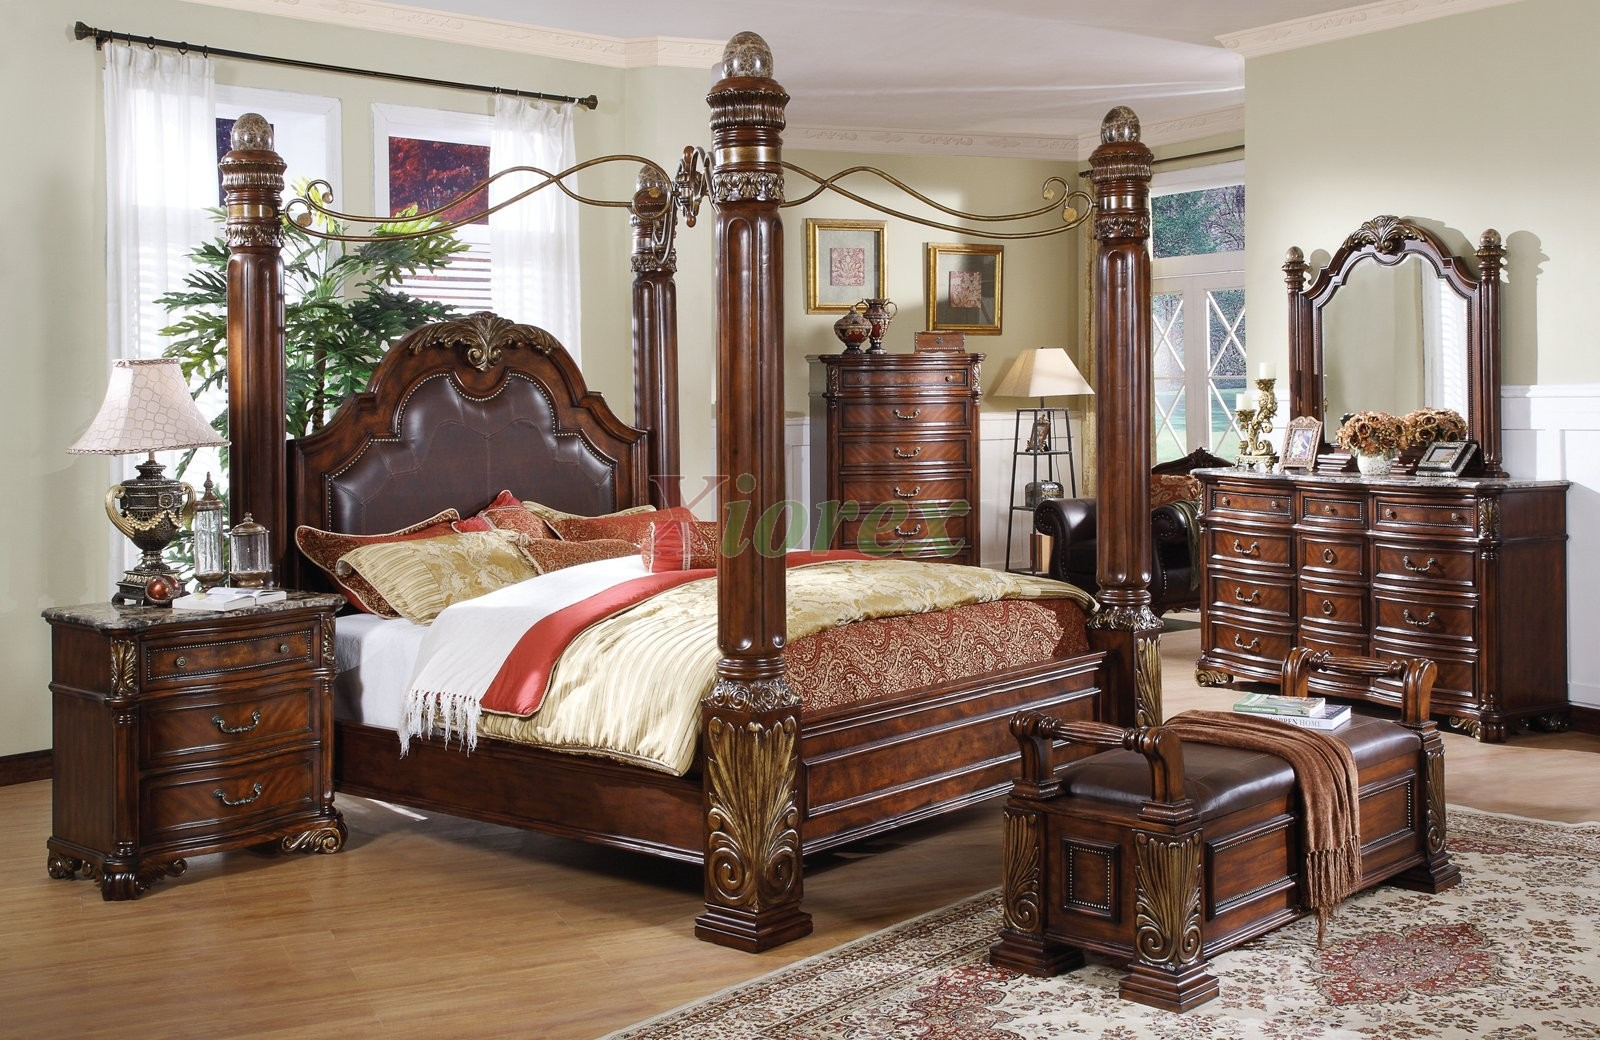 Canopy bed sets bedroom furniture sets w poster canopy for Bedroom furniture beds